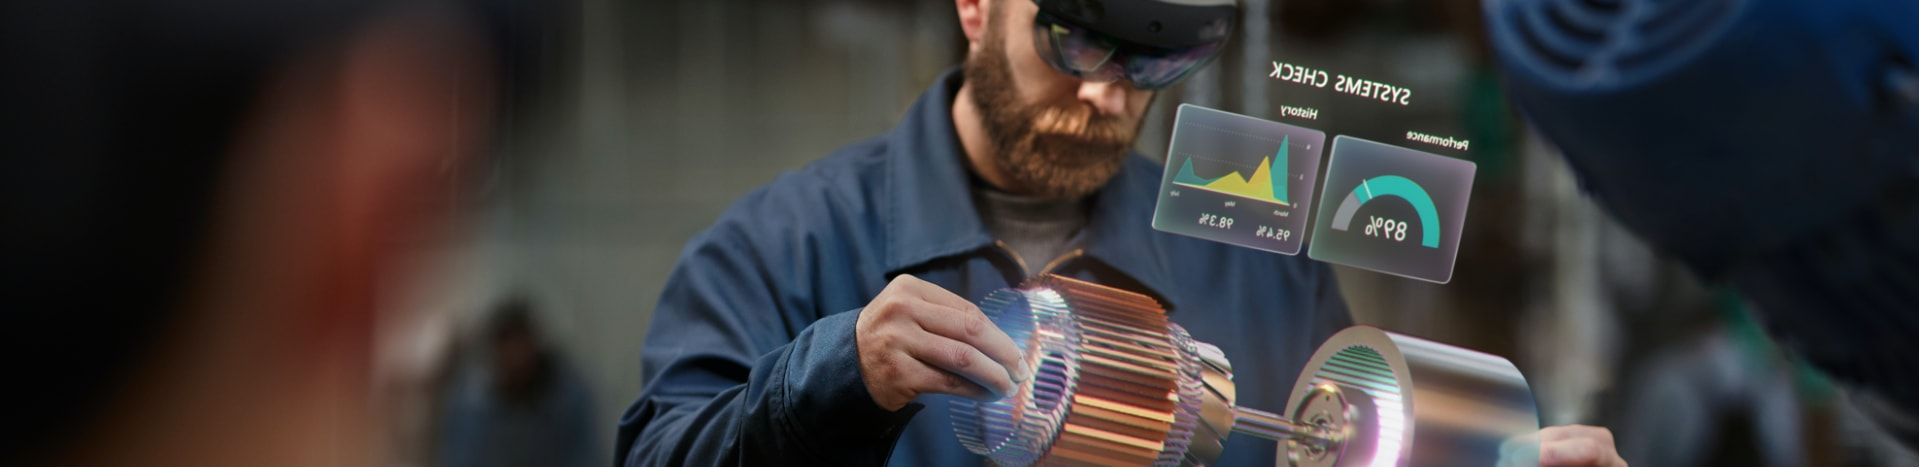 Engineer in a factory using augmented reality goggles to do a system check of a machine component.